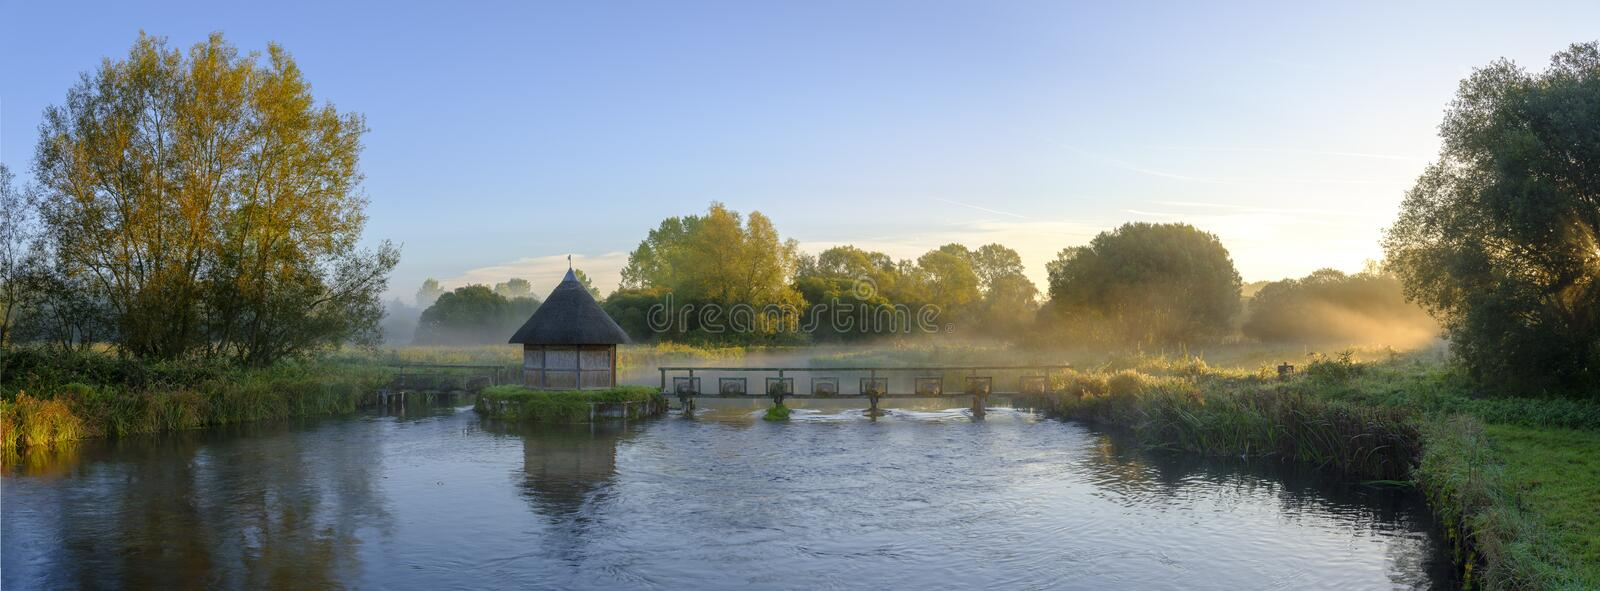 Autumn sunrise with mist on the Eel House traps on the River Test near Longstock, Hampshire, UK royalty free stock photos